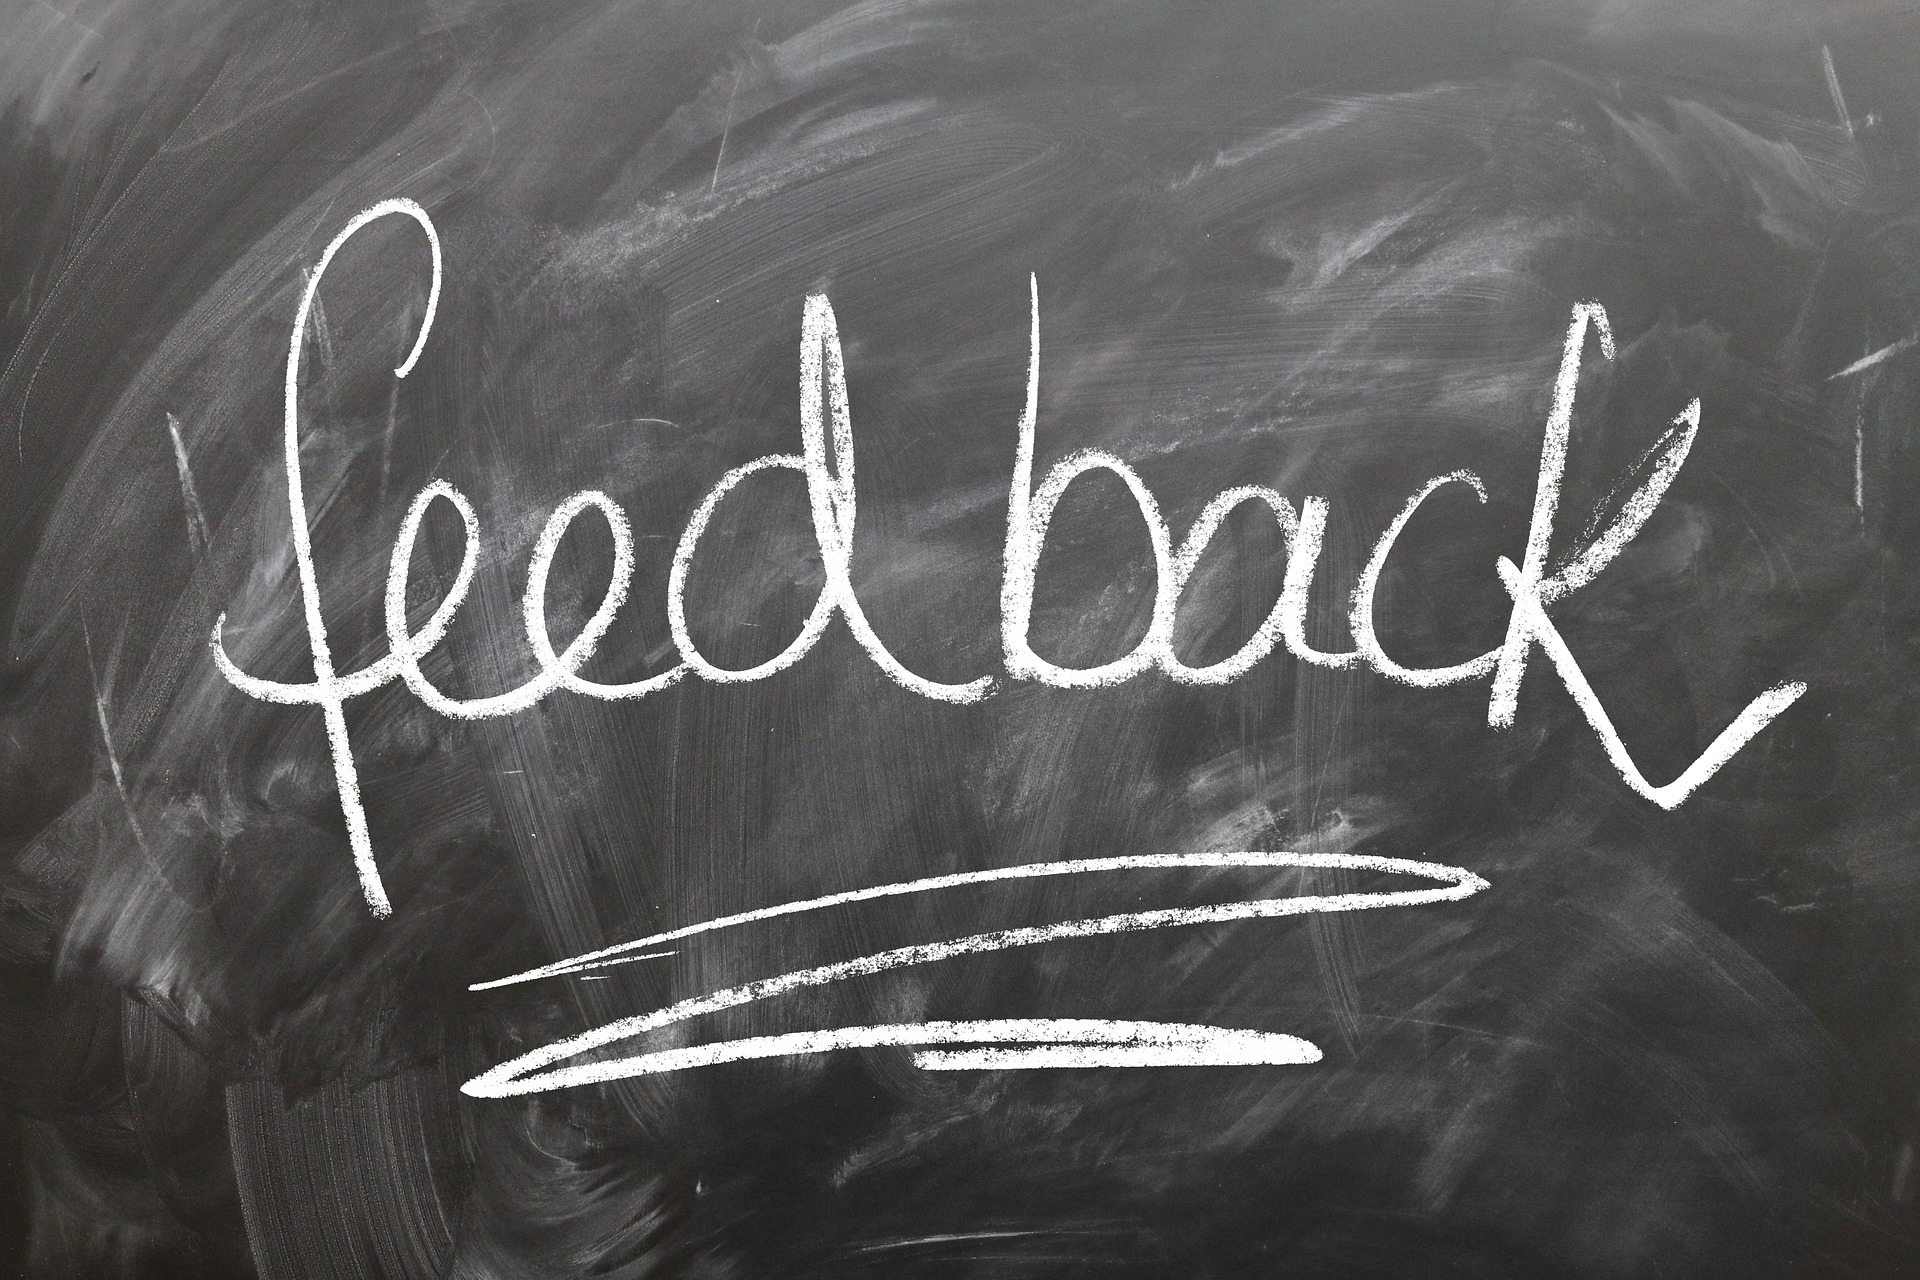 Customer Feedback Loop in 2021 - The Whats, the Whys and the Hows